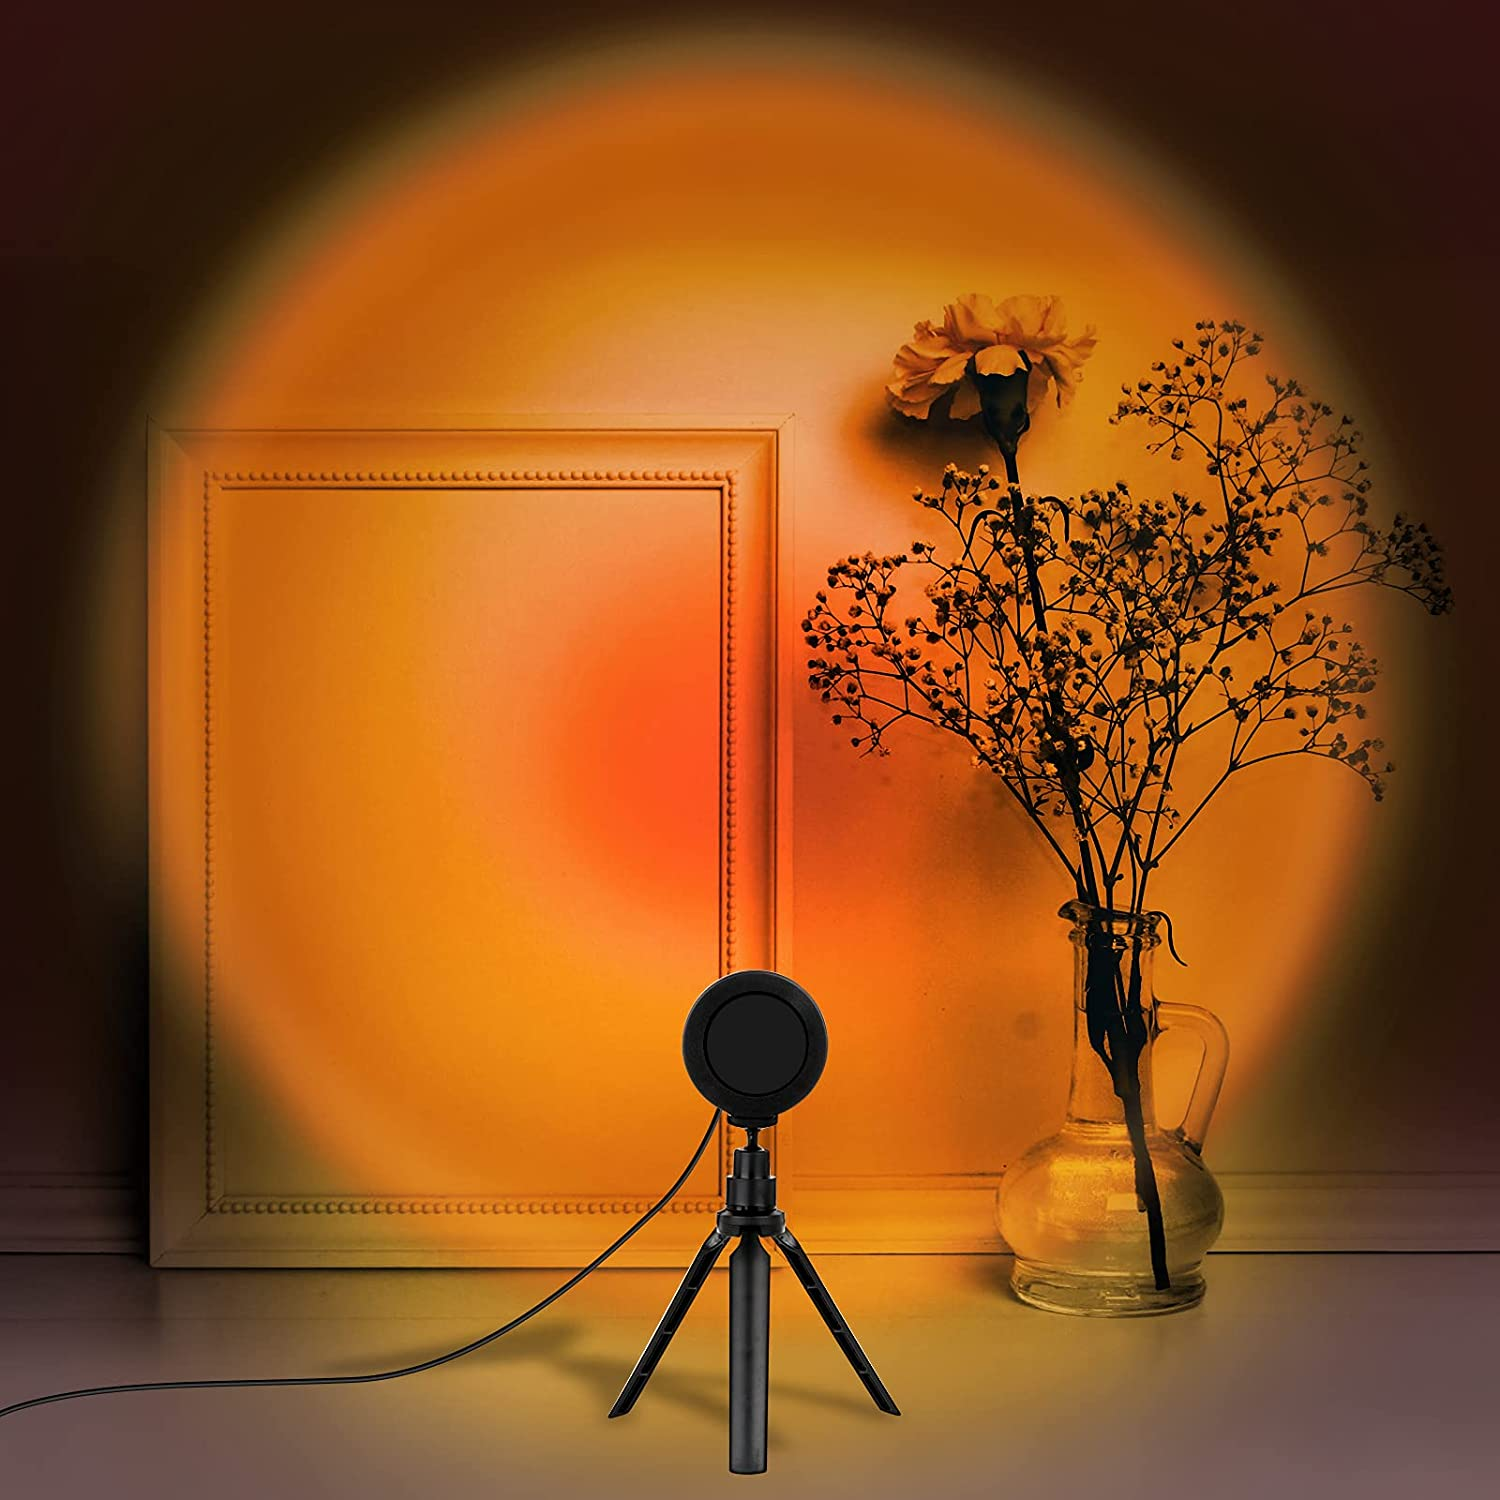 Sunset Lamp, LED Sunset Projector Light 360 Degree Rotation Sunset Projection Lamp USB Night Light Romantic Atmosphere Light for Photography, Vlog, Party, Bedroom, Home Living Room Decor